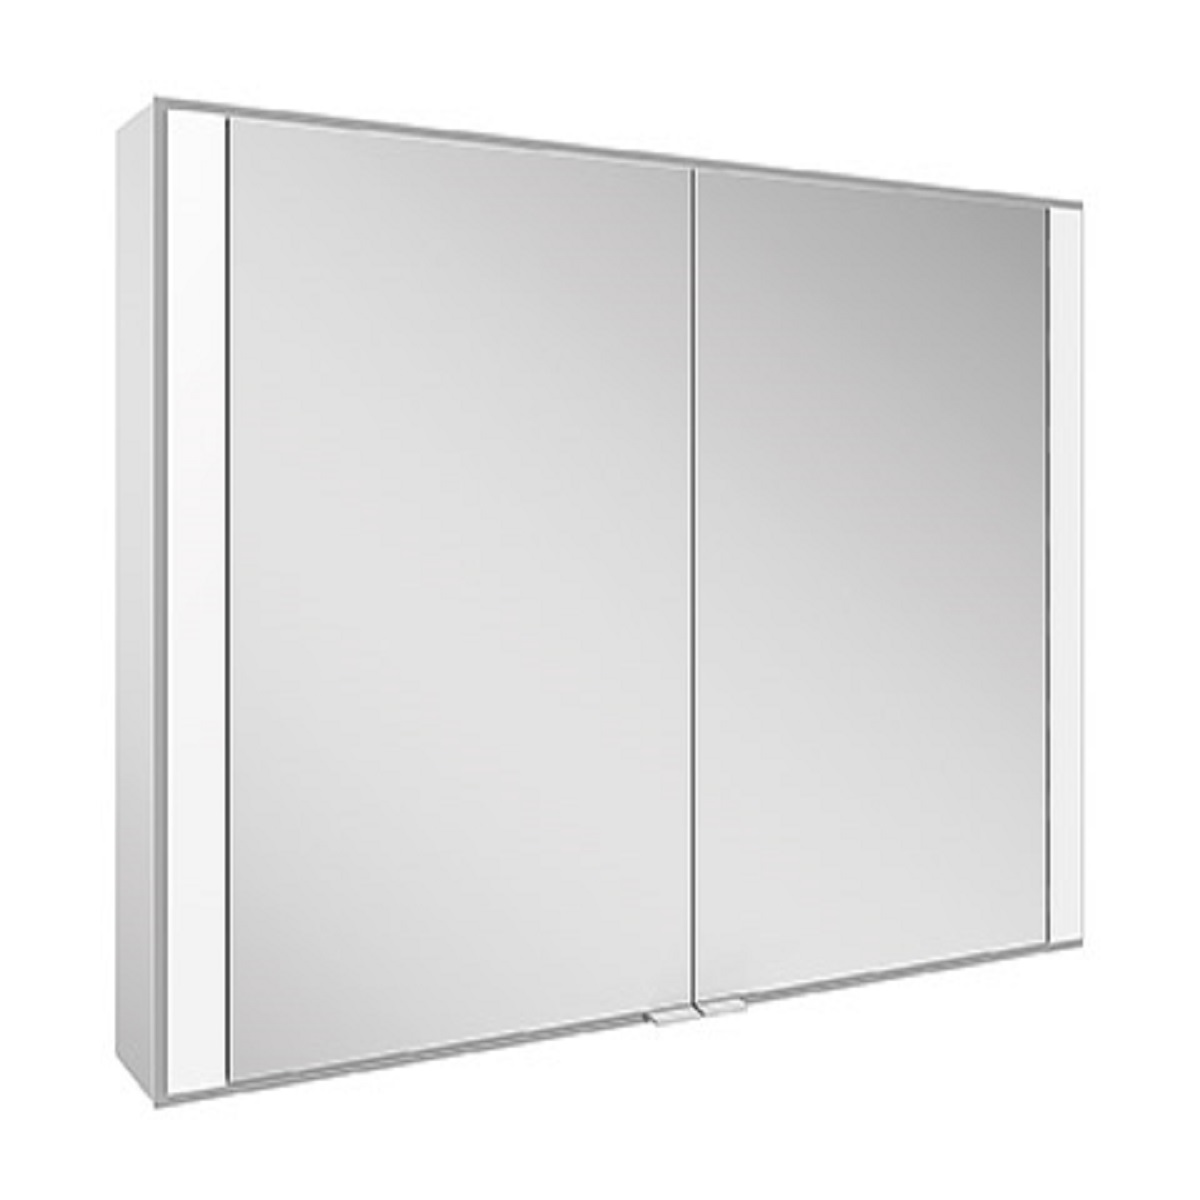 Keuco Royal 60 Mirror Cabinet Wall Mounted